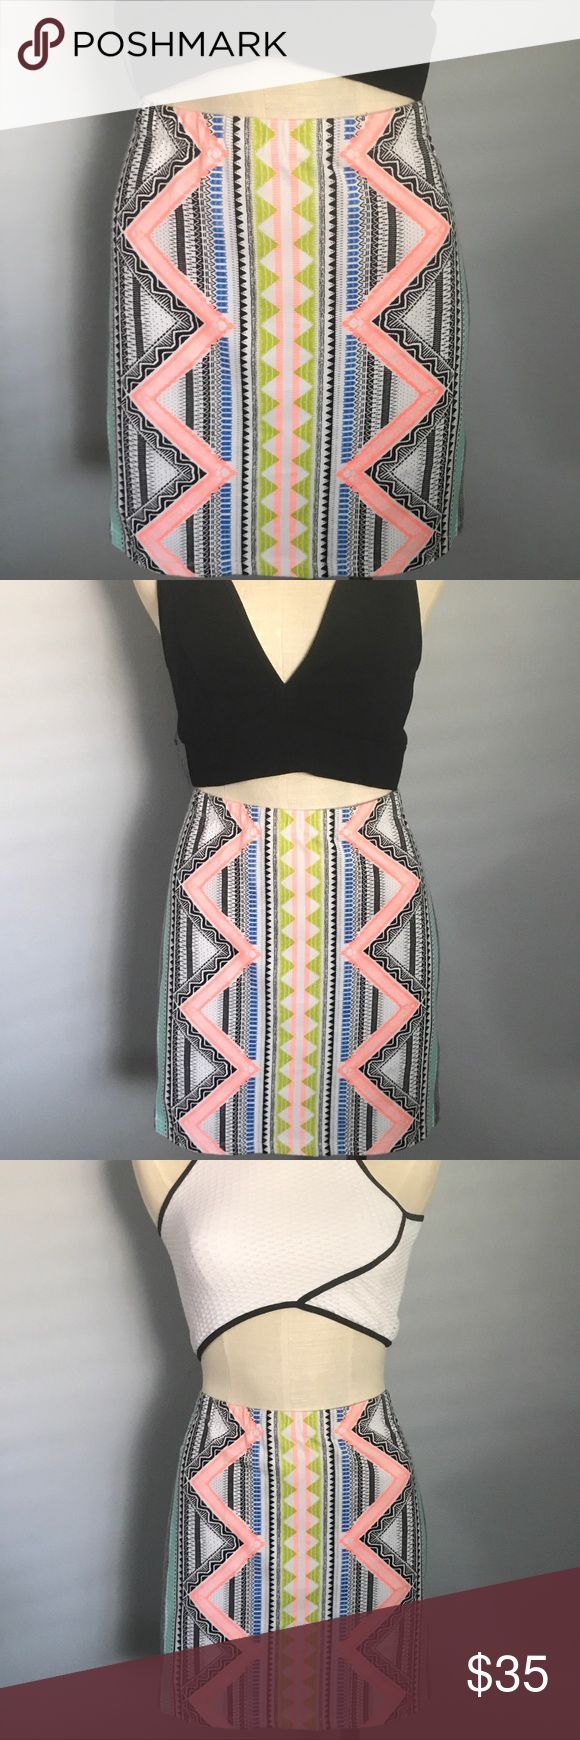 SPORTSGIRL Neon Aztec print skirt Stand out in the crowd with this Aztec print skirt in FUN, BRIGHT colors! Purchased in Australia and wore to a beach event in Sydney...it was perfect!!💋 Worn once, like new✨  BNWT Nasty Gal tops also available in my closet🙌🏼 Skirts Mini